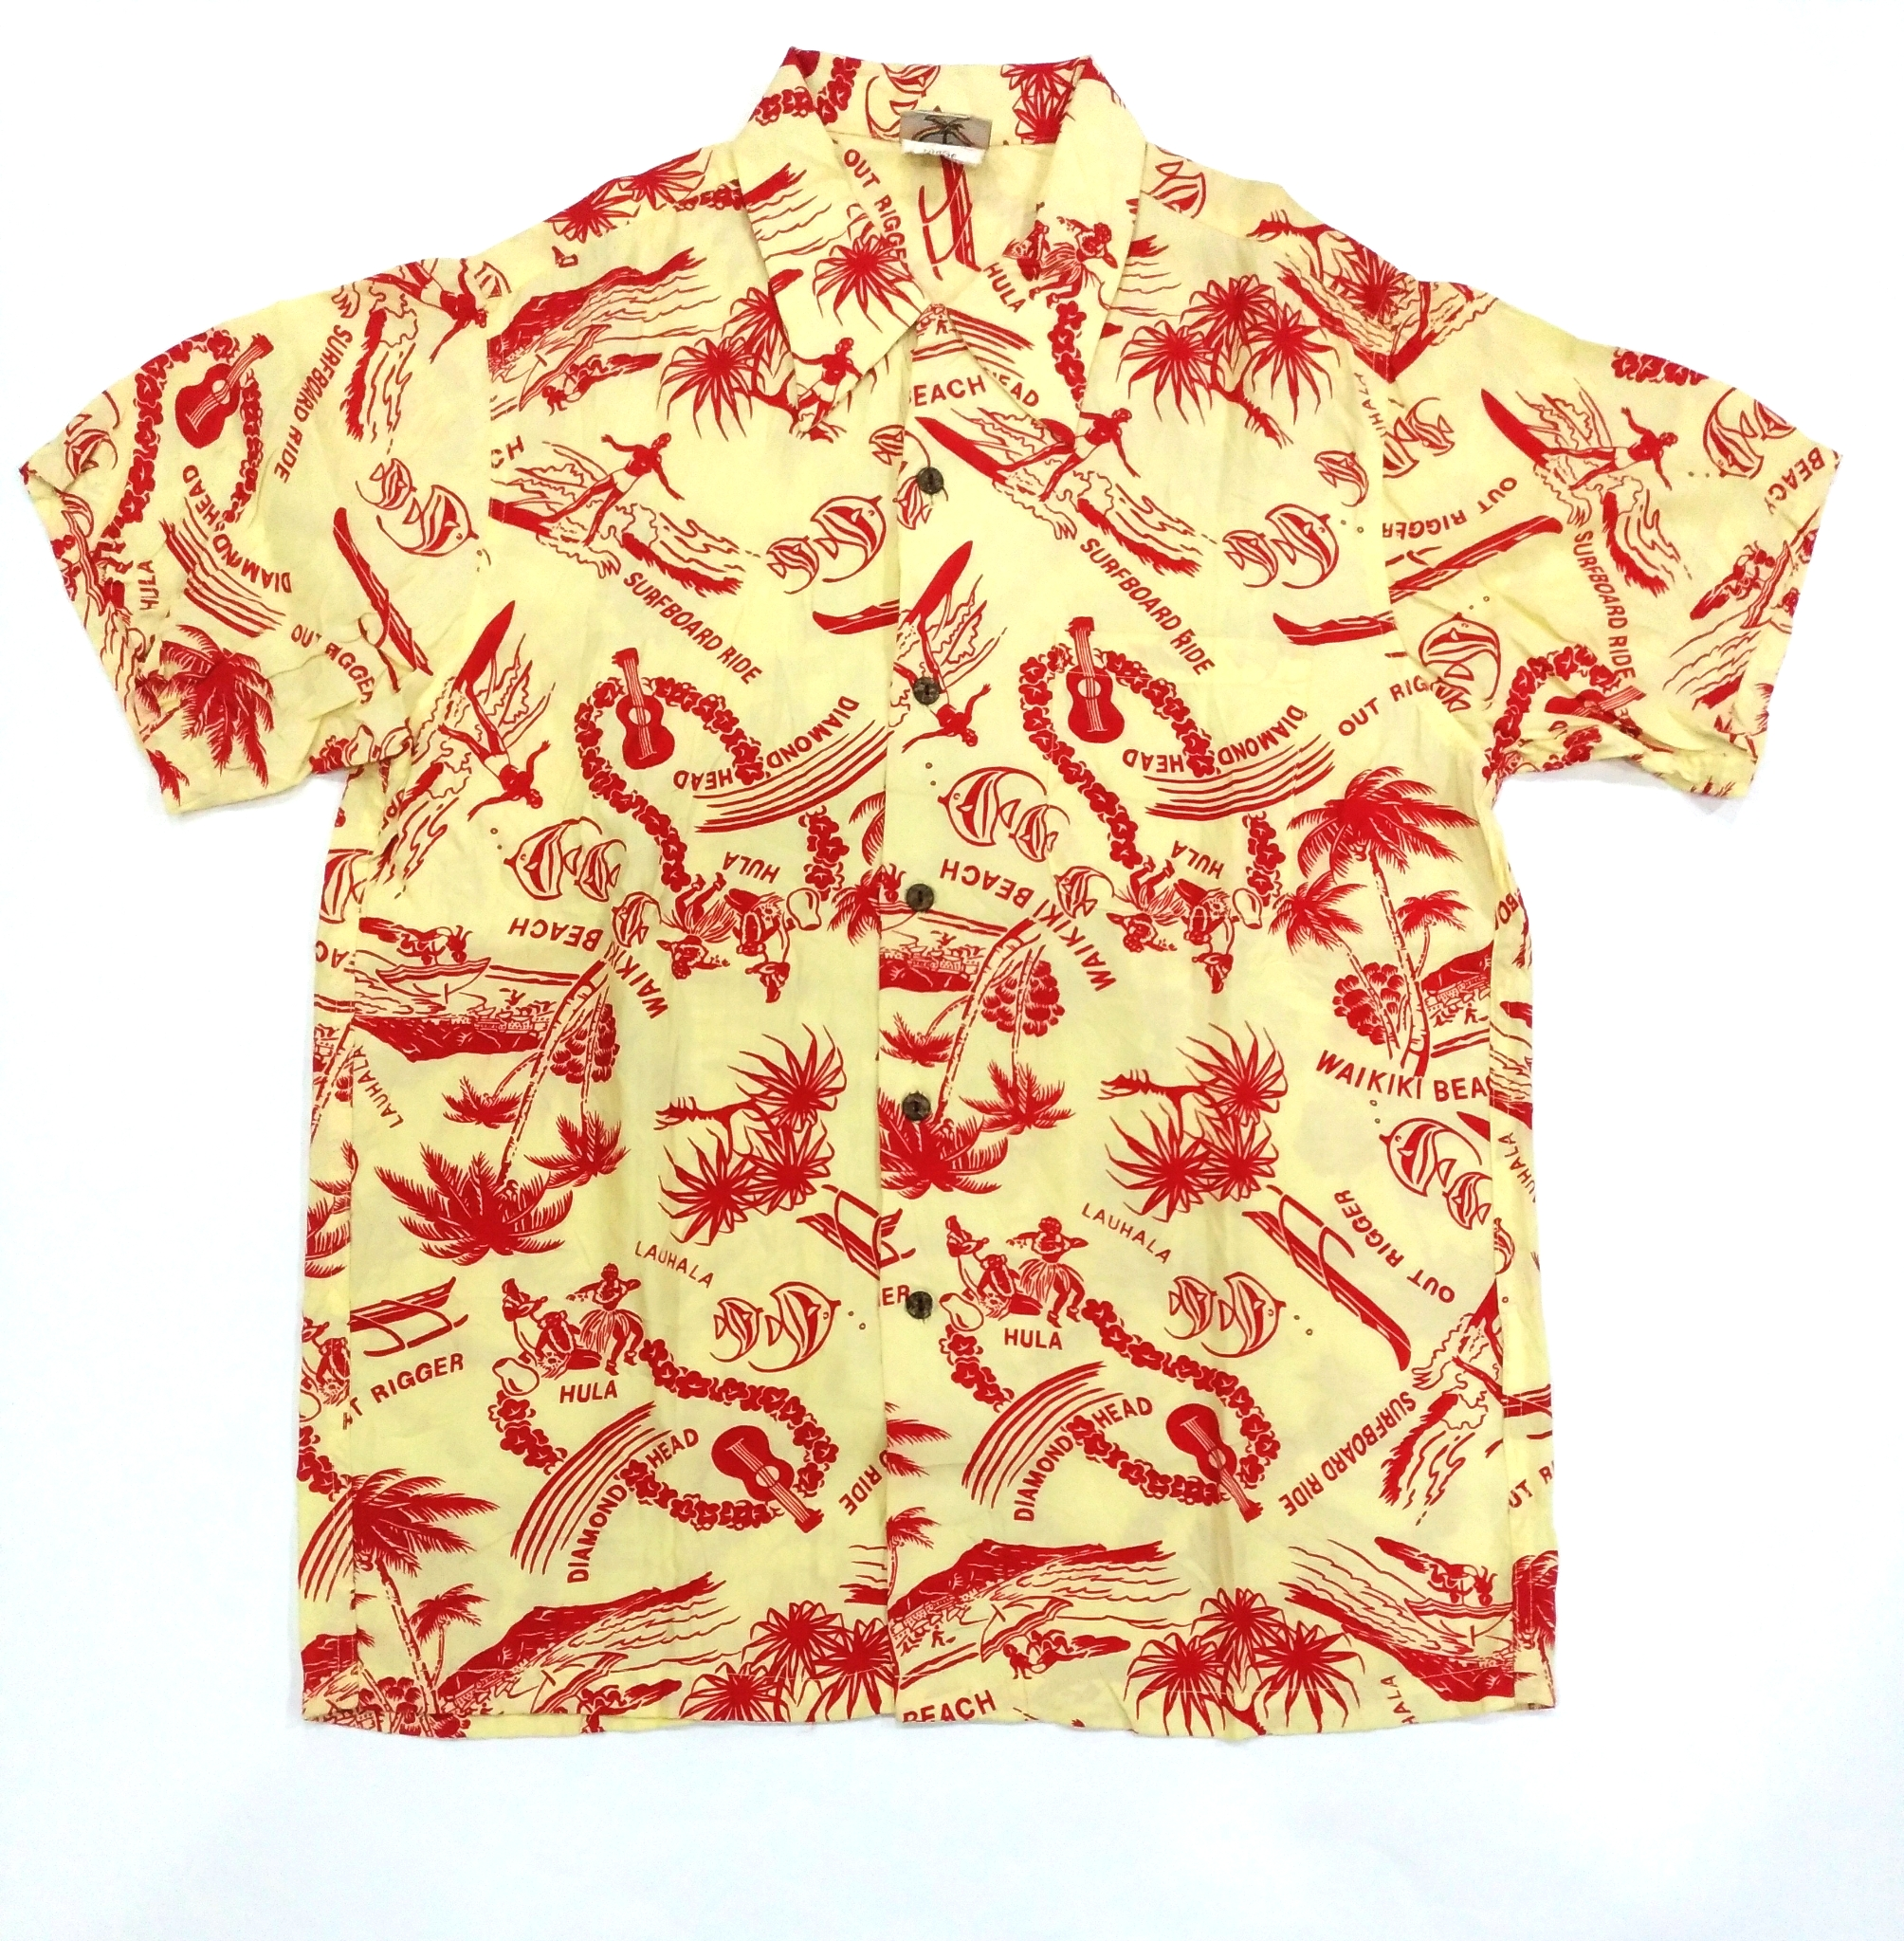 f9c23f8779 [LAST DROP] HAWAIIAN CLASSIC SURFING BEACH PALM VINTAGE ALOHA SHIRT